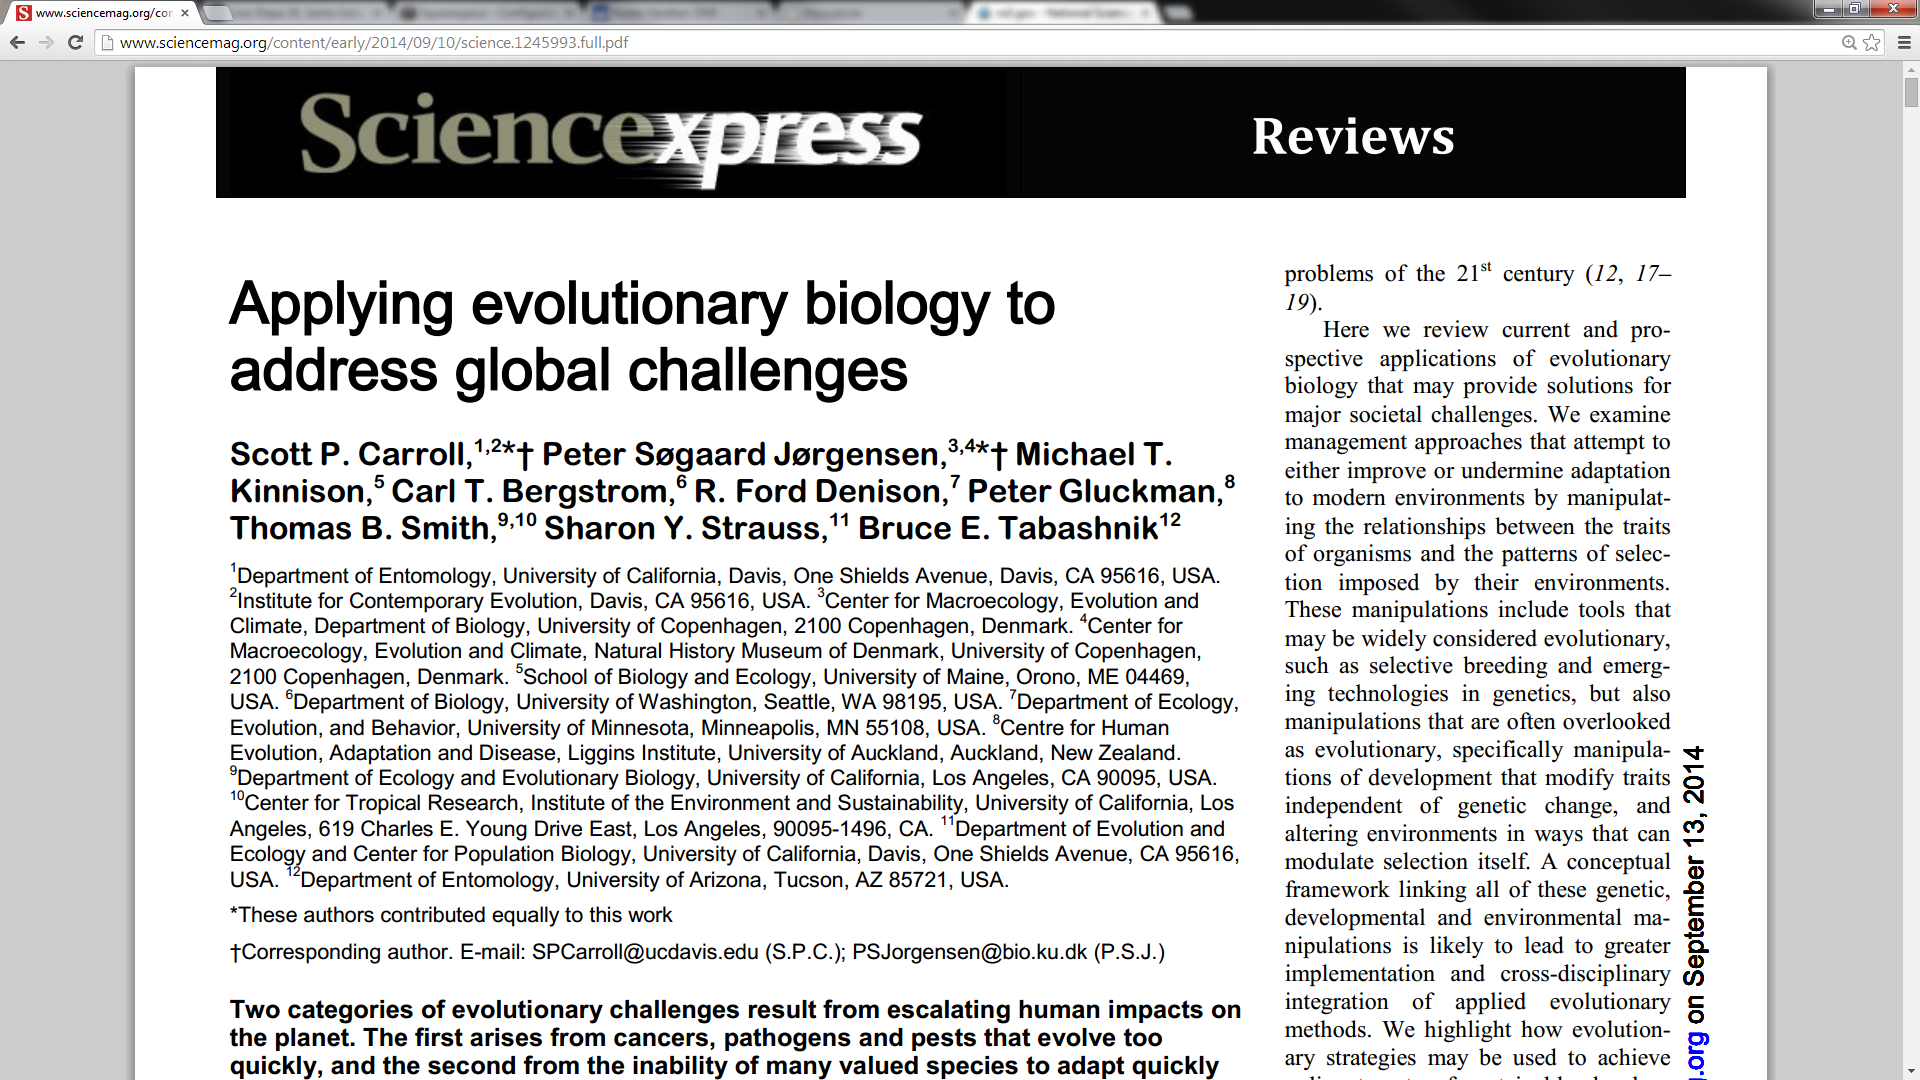 The header of the Science Express release with the team of nine authors highlighted.